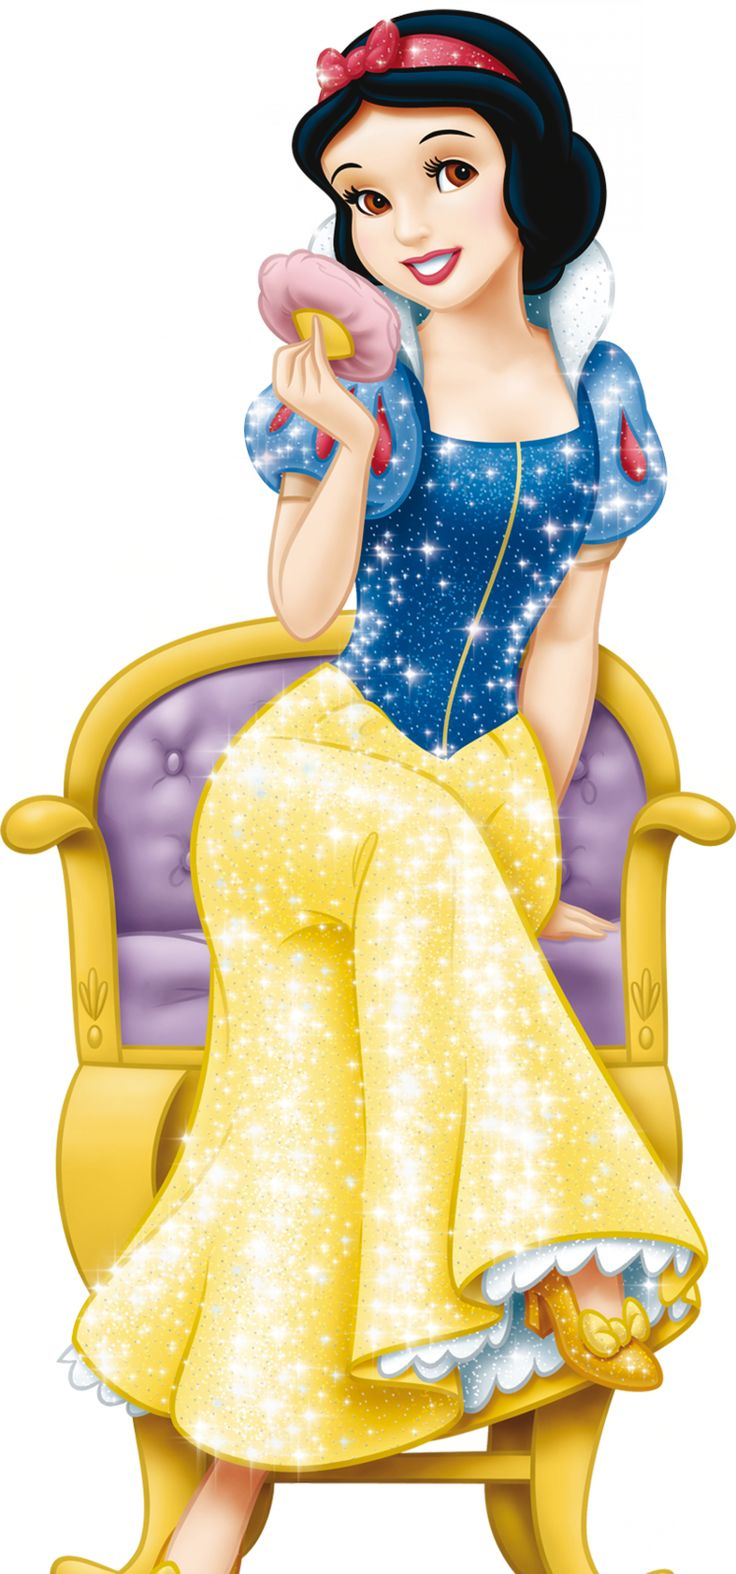 Find this pin and more on branca de neve by brunaadvportoghese